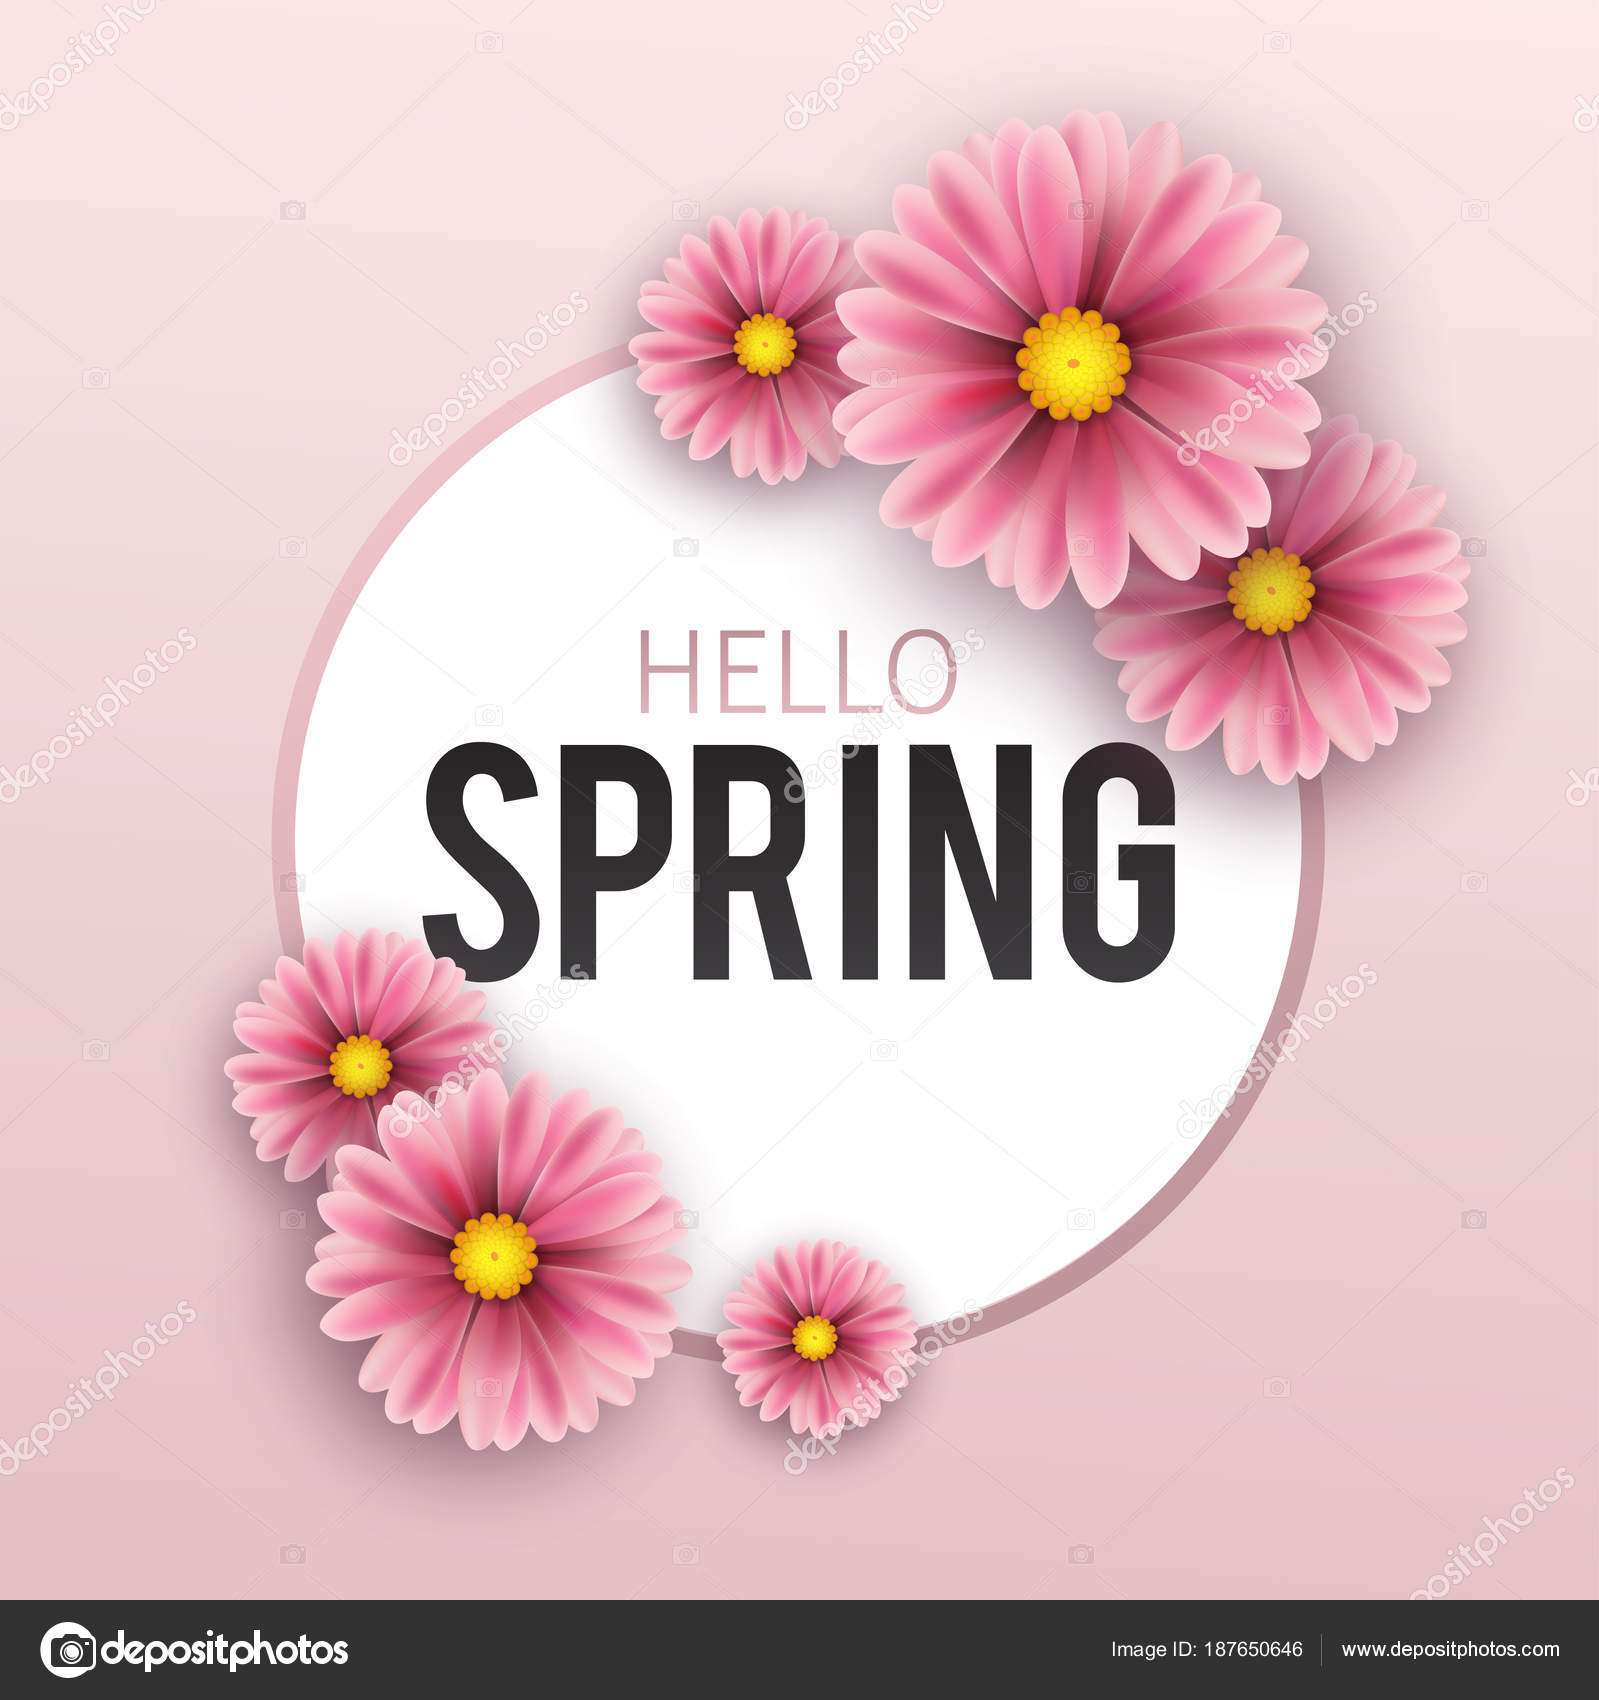 Hello Spring Floral Greeting Card Flowers Banner With Realistic